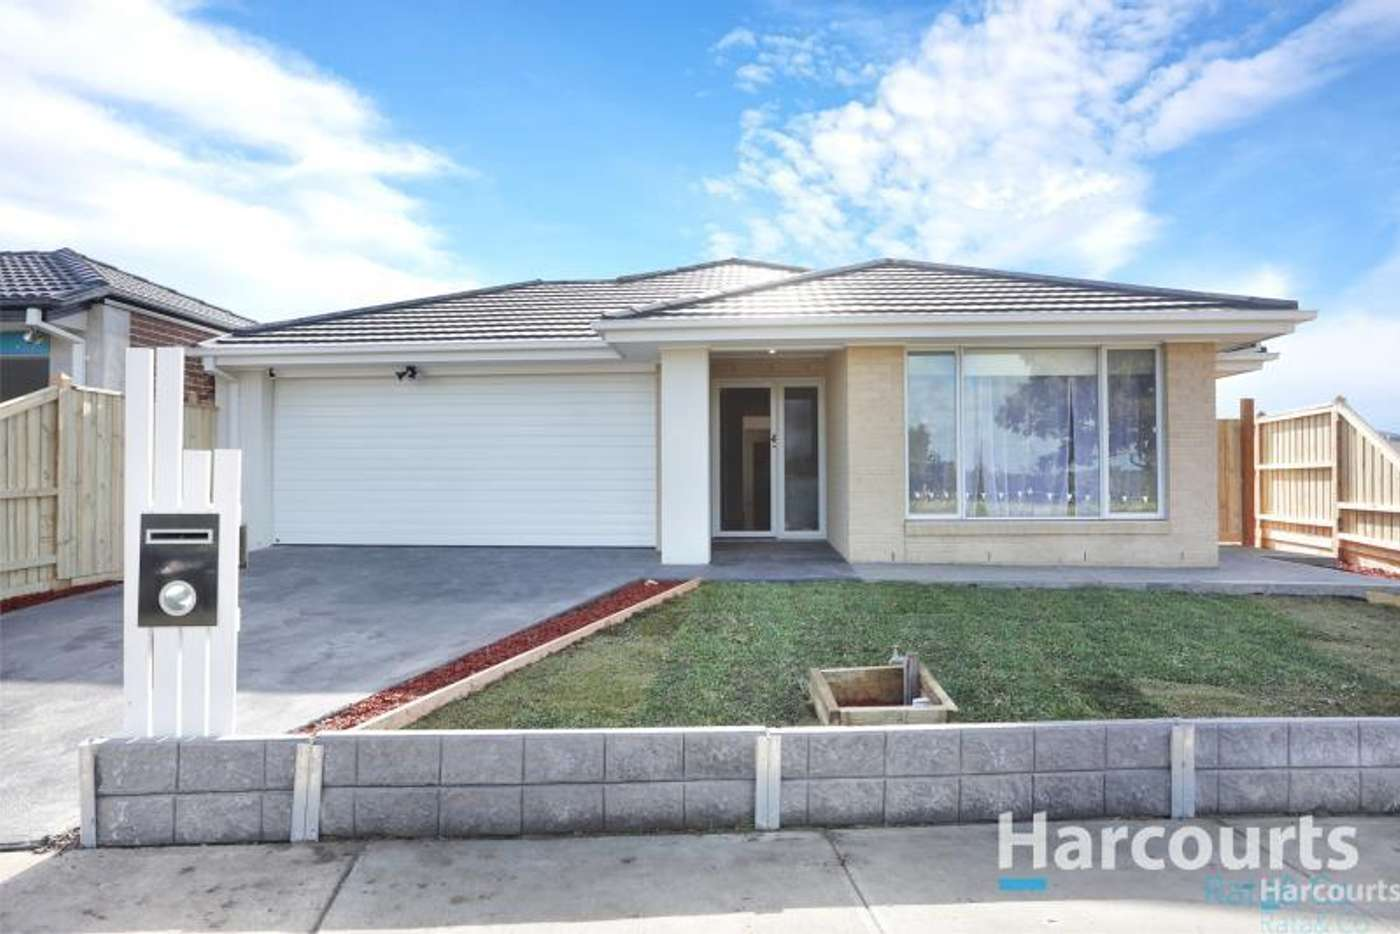 Main view of Homely house listing, 30 Kempen Road, Doreen VIC 3754